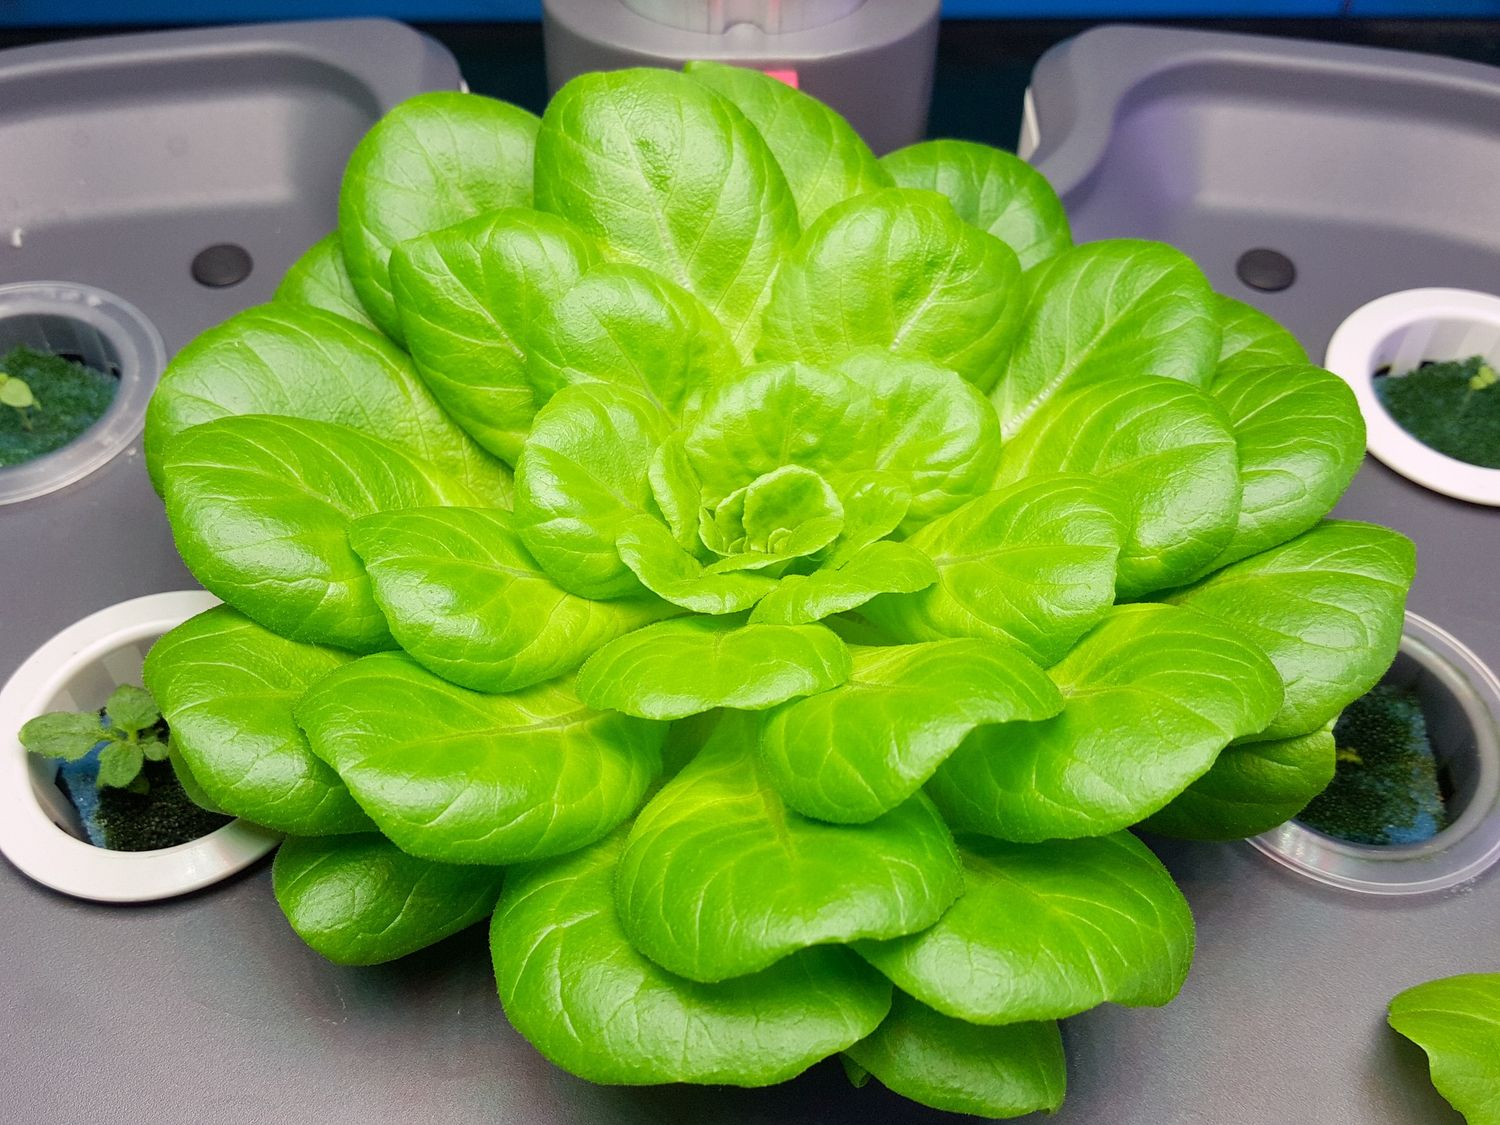 hydroponic systems 2020